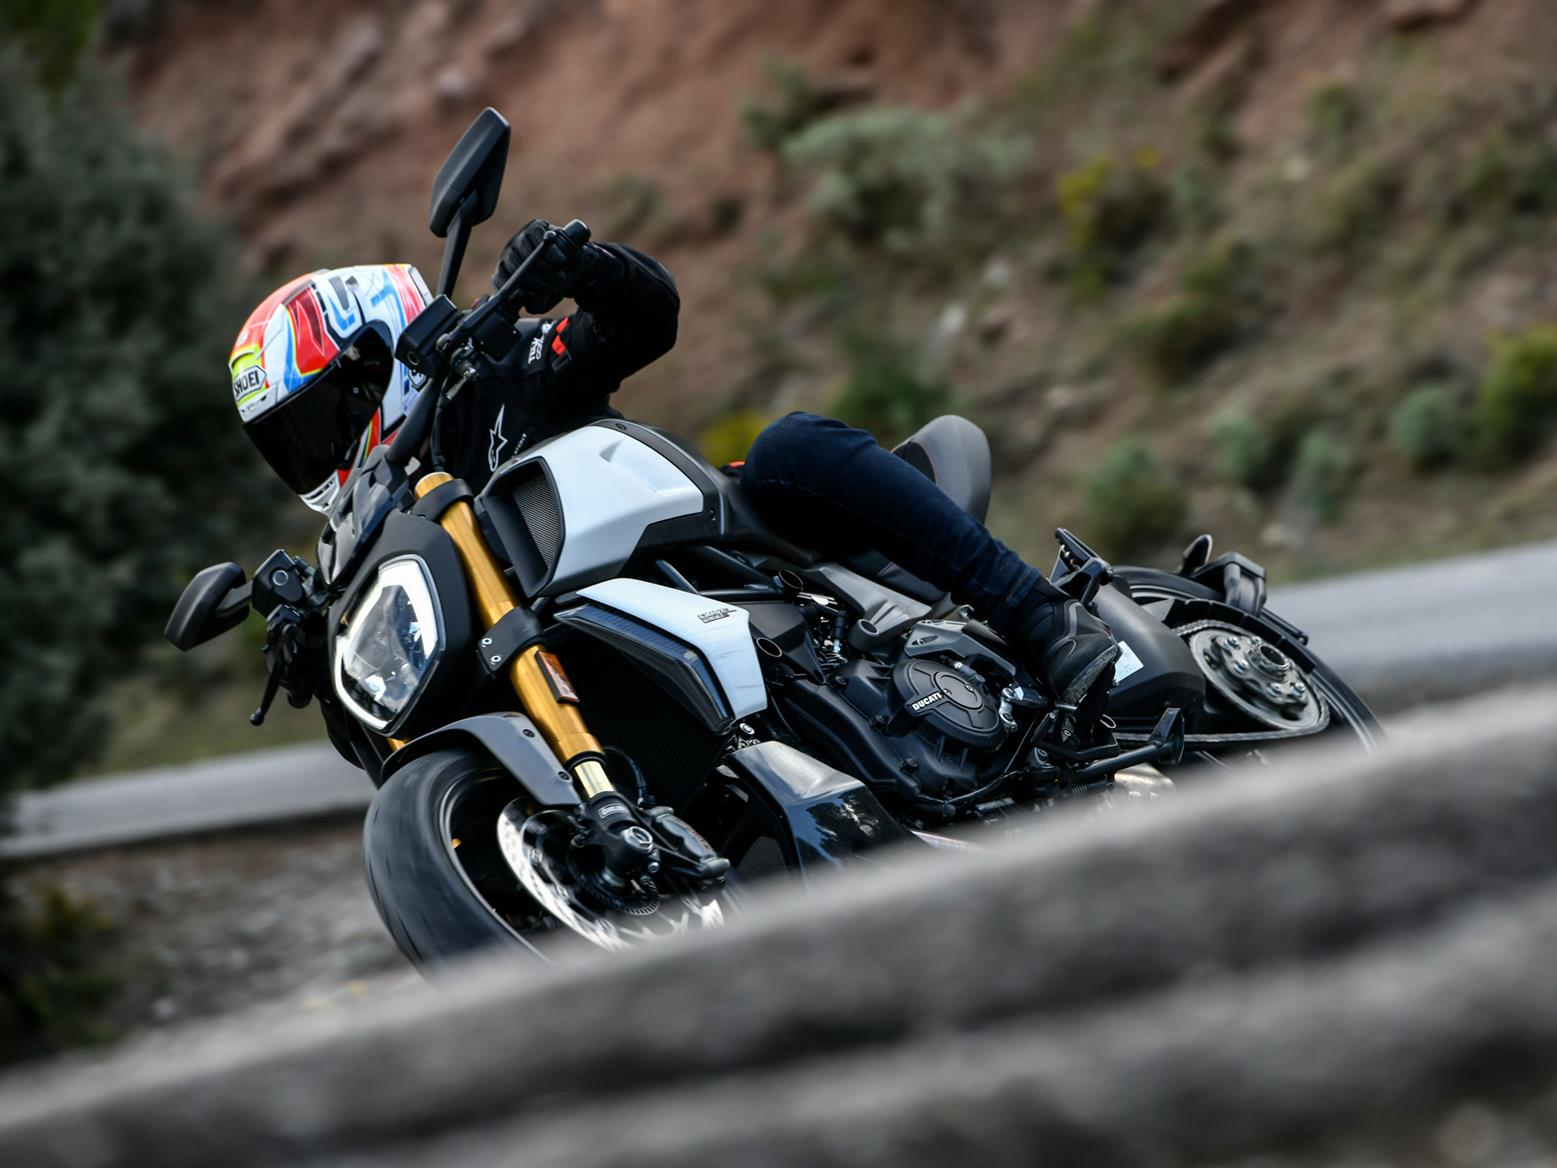 Action cornering shot on 2019 Ducati Diavel